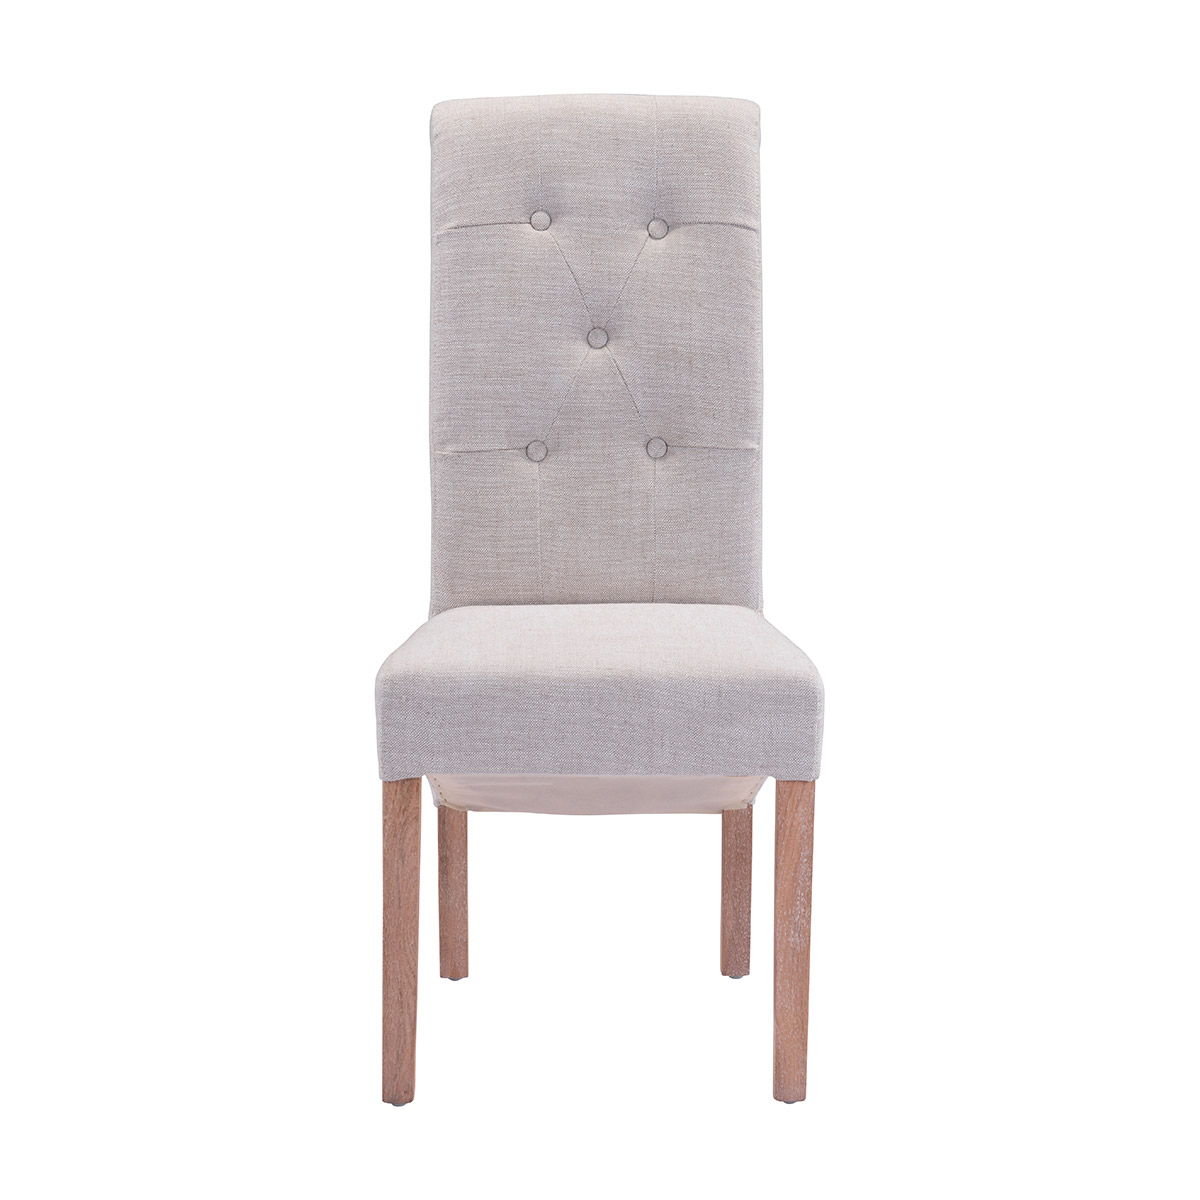 Zuo Era Hayes Valley Dining Chair In Beige Boost Home